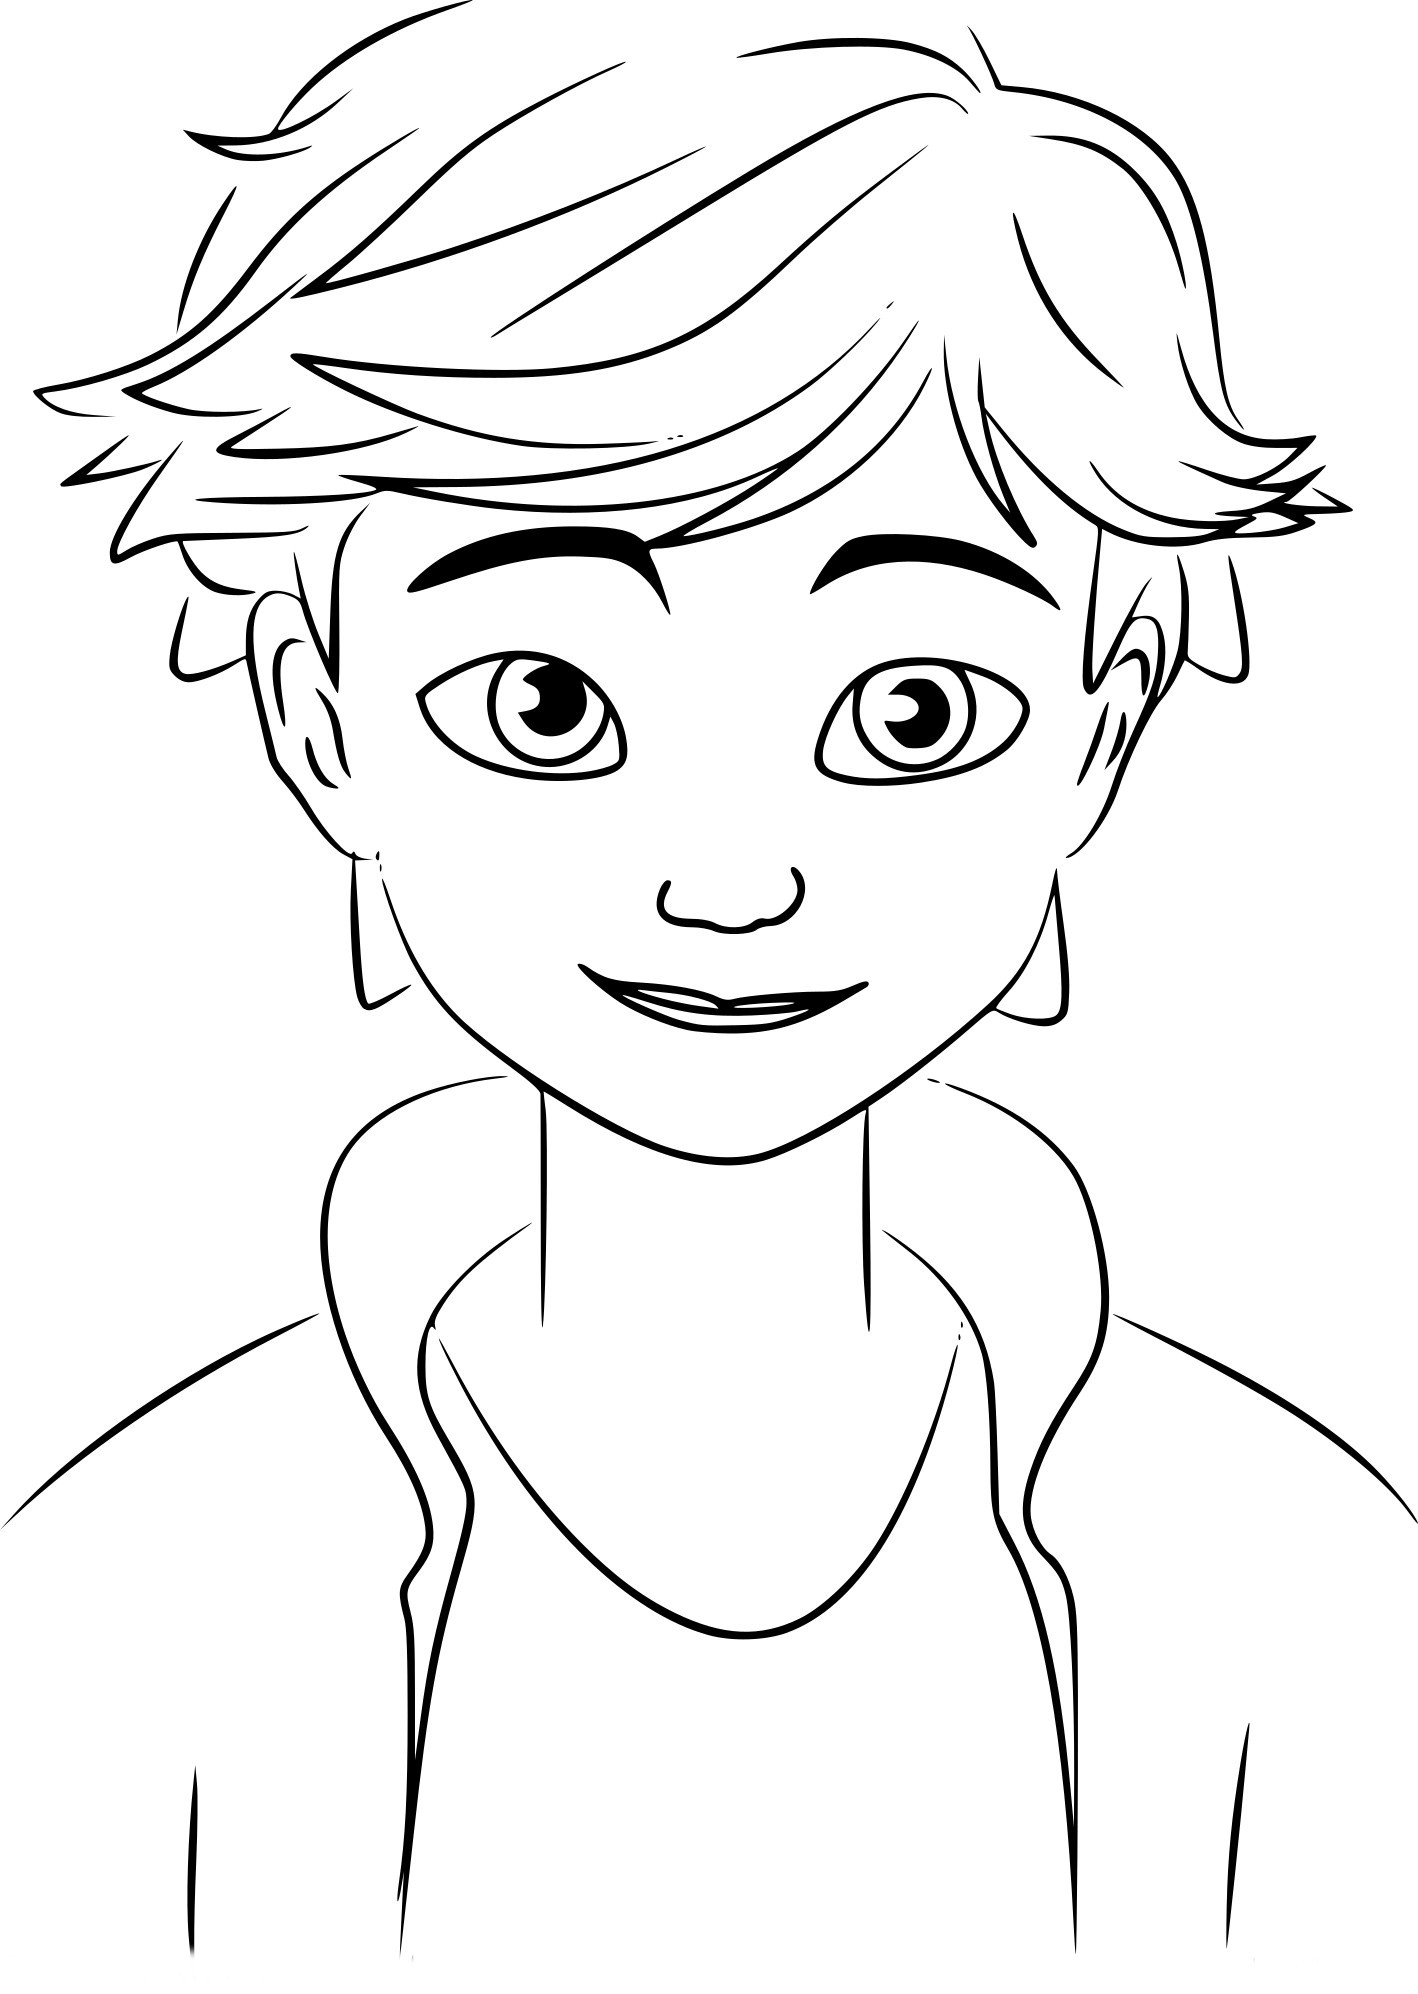 Miraculous Coloring Pages At Getcolorings